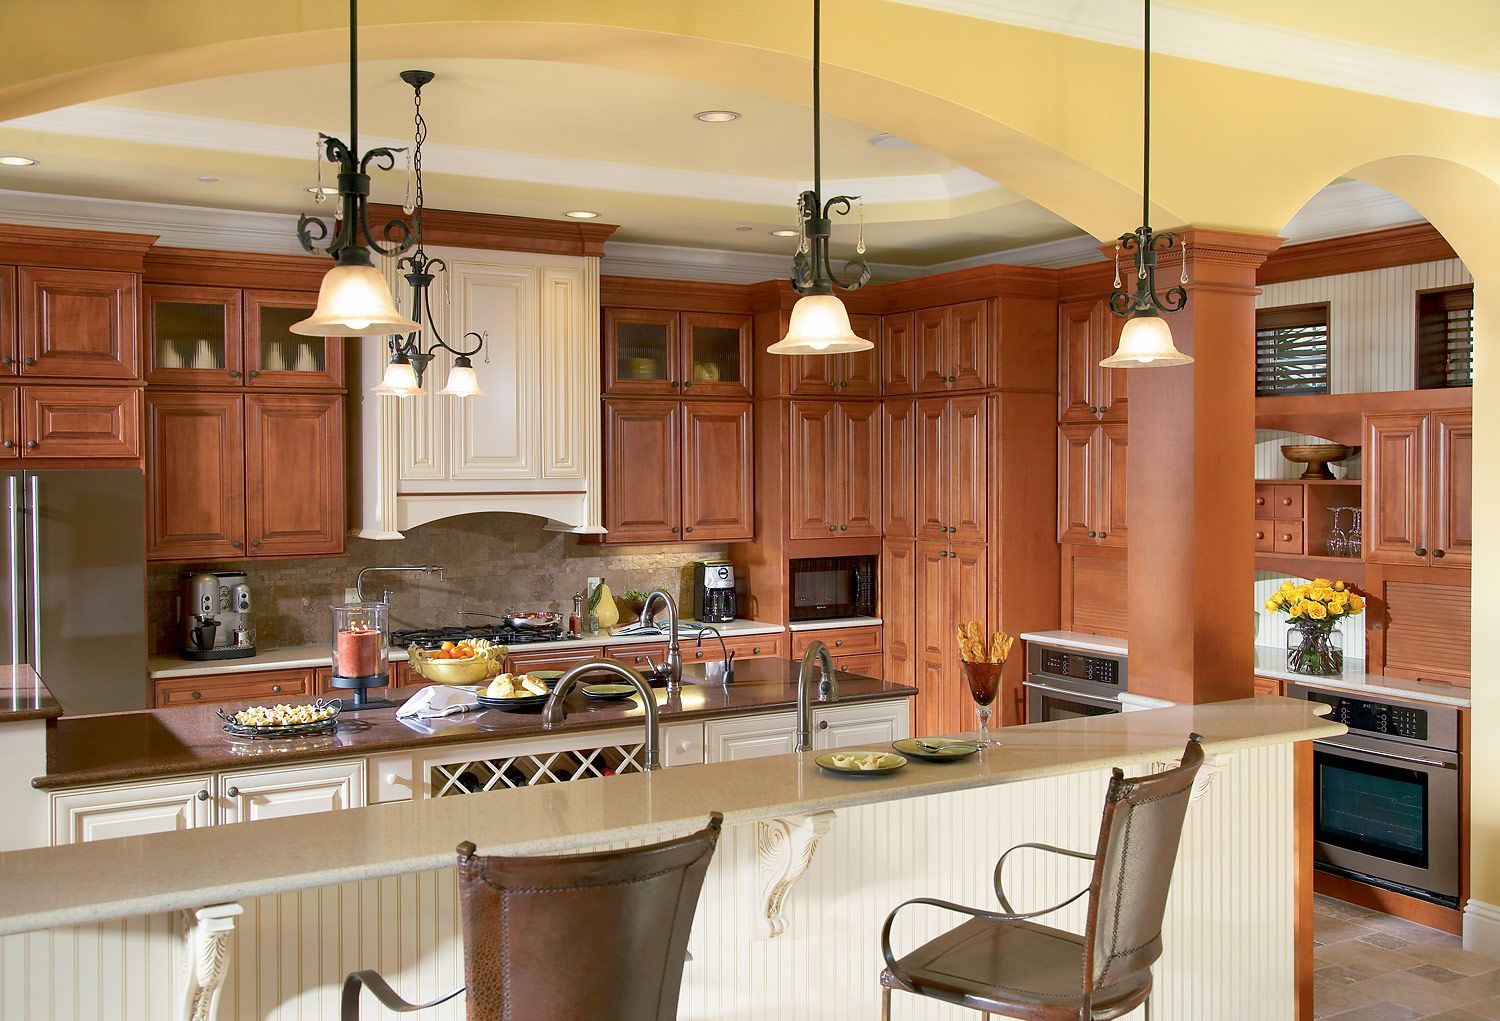 Sierra Vista Maple Cognac Kitchen | Timberlake Cabinetry | Our ...